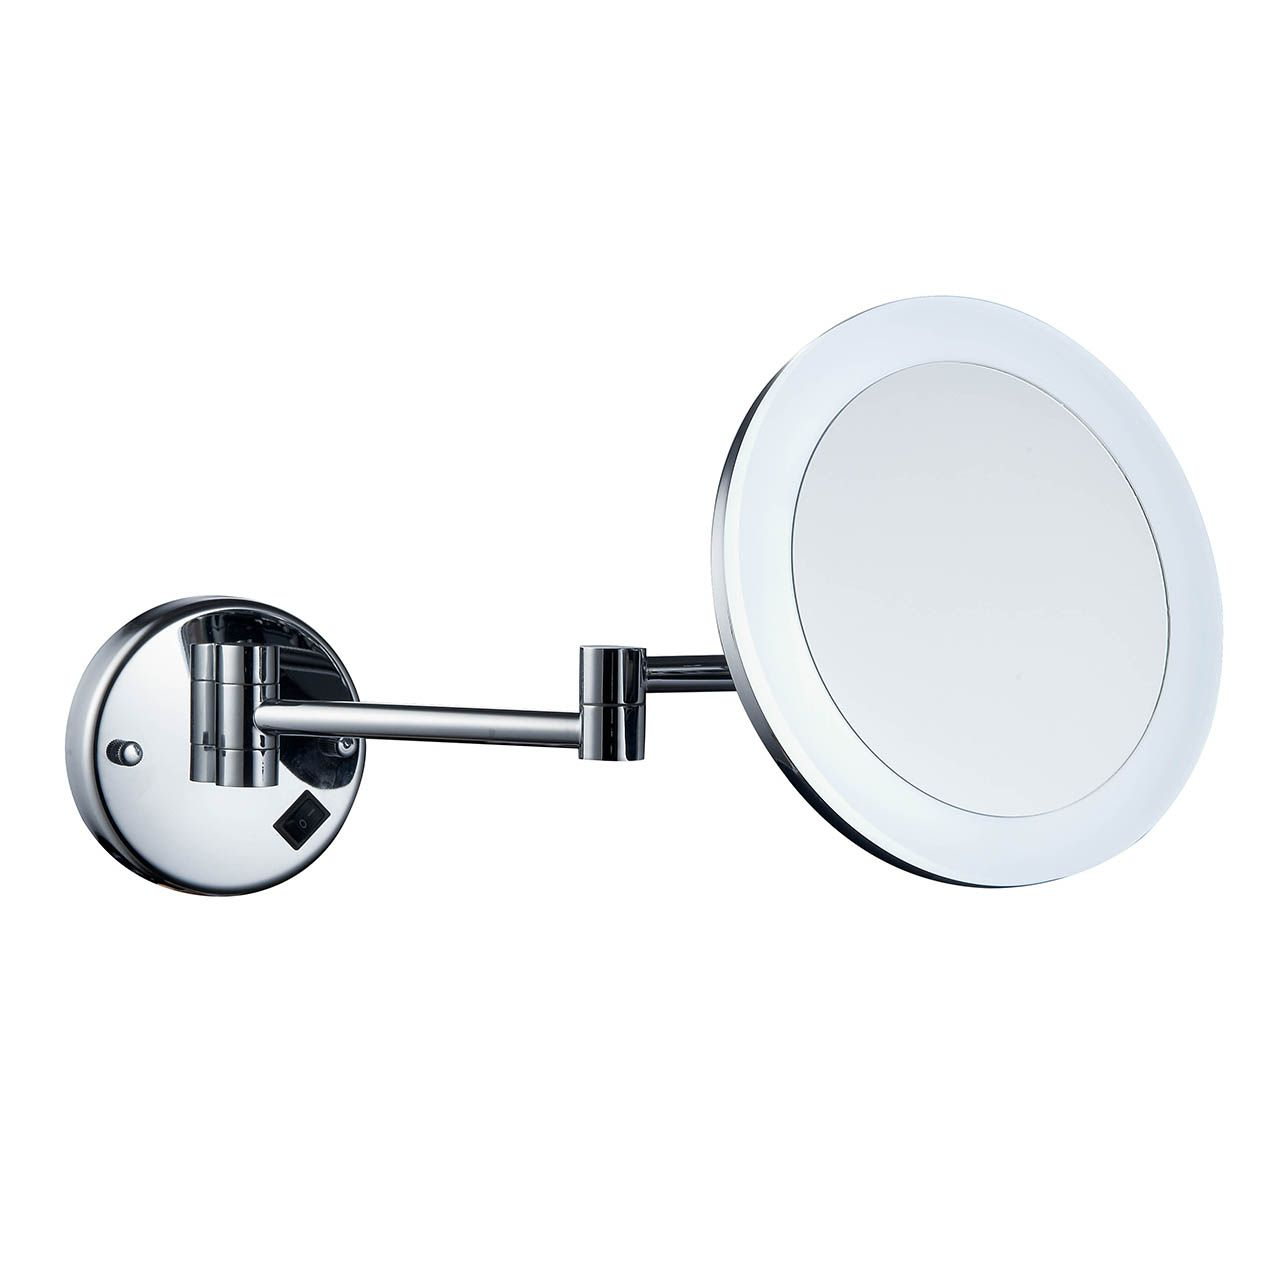 Excelvan 7x Magnification Wall Mount Makeup Vanity Mirror Jerdon Mounted Wiring Diagram Top 304 Stainless Steel 85 Inch Illuminated 10x Magnifying Face